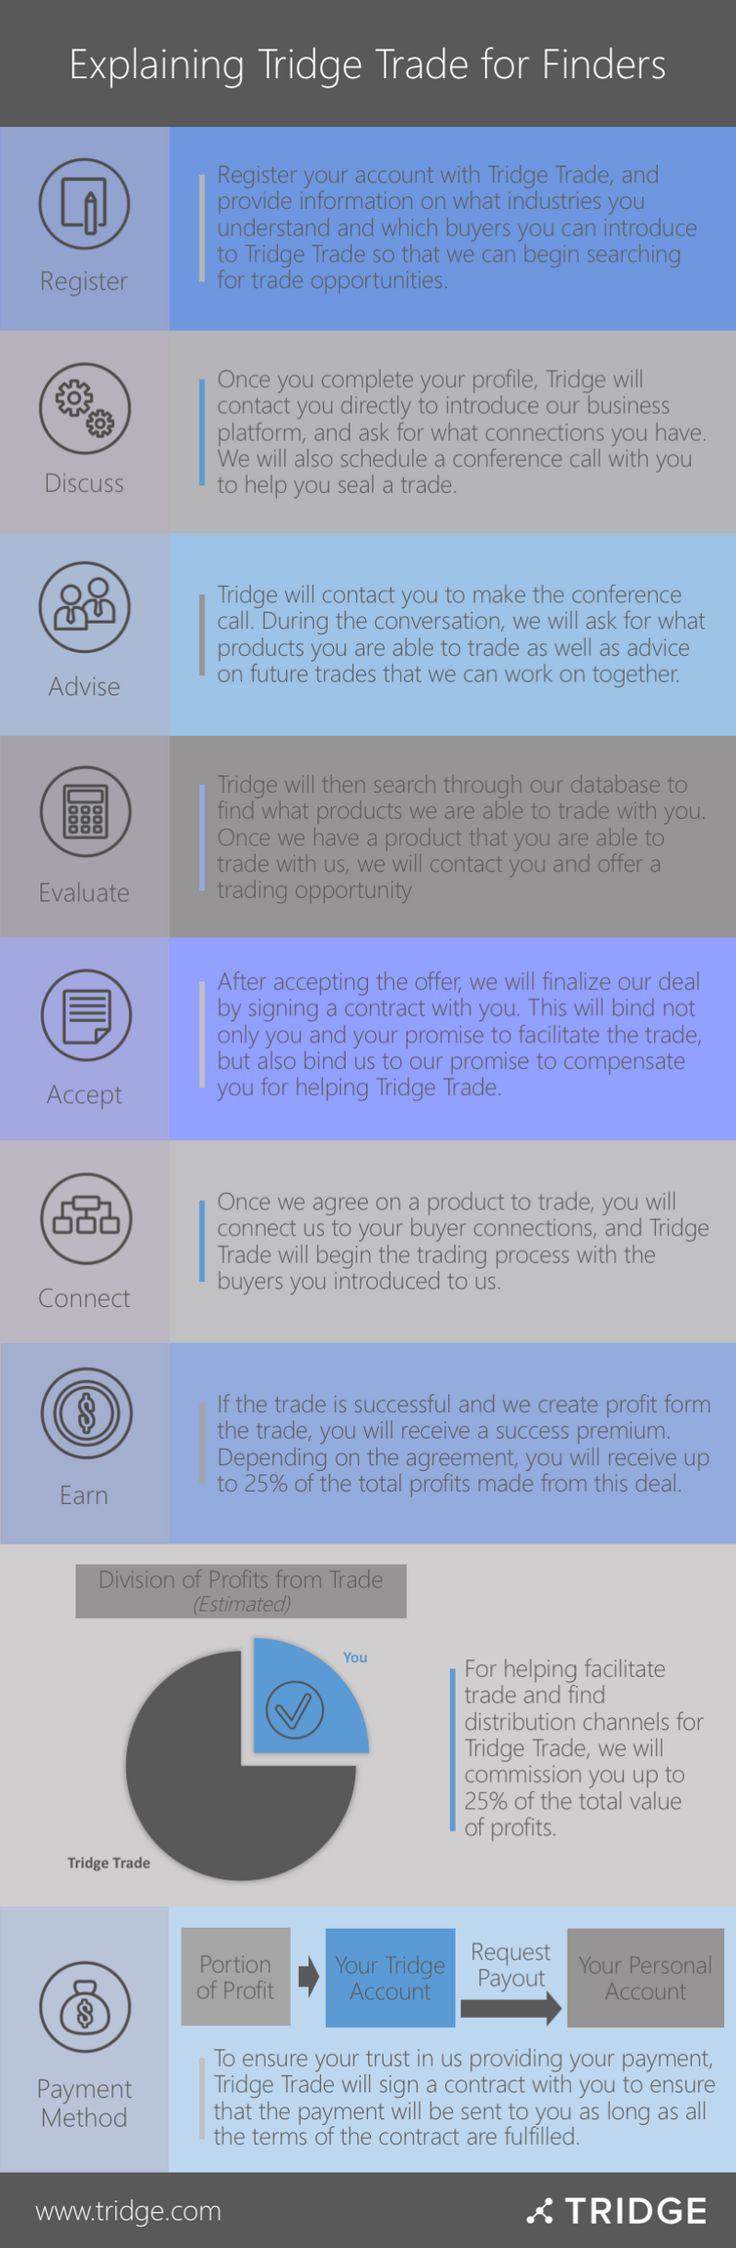 Tridge Trade explained: visit our page to learn more about our business platform that is gaining popularity among industry experts worldwide